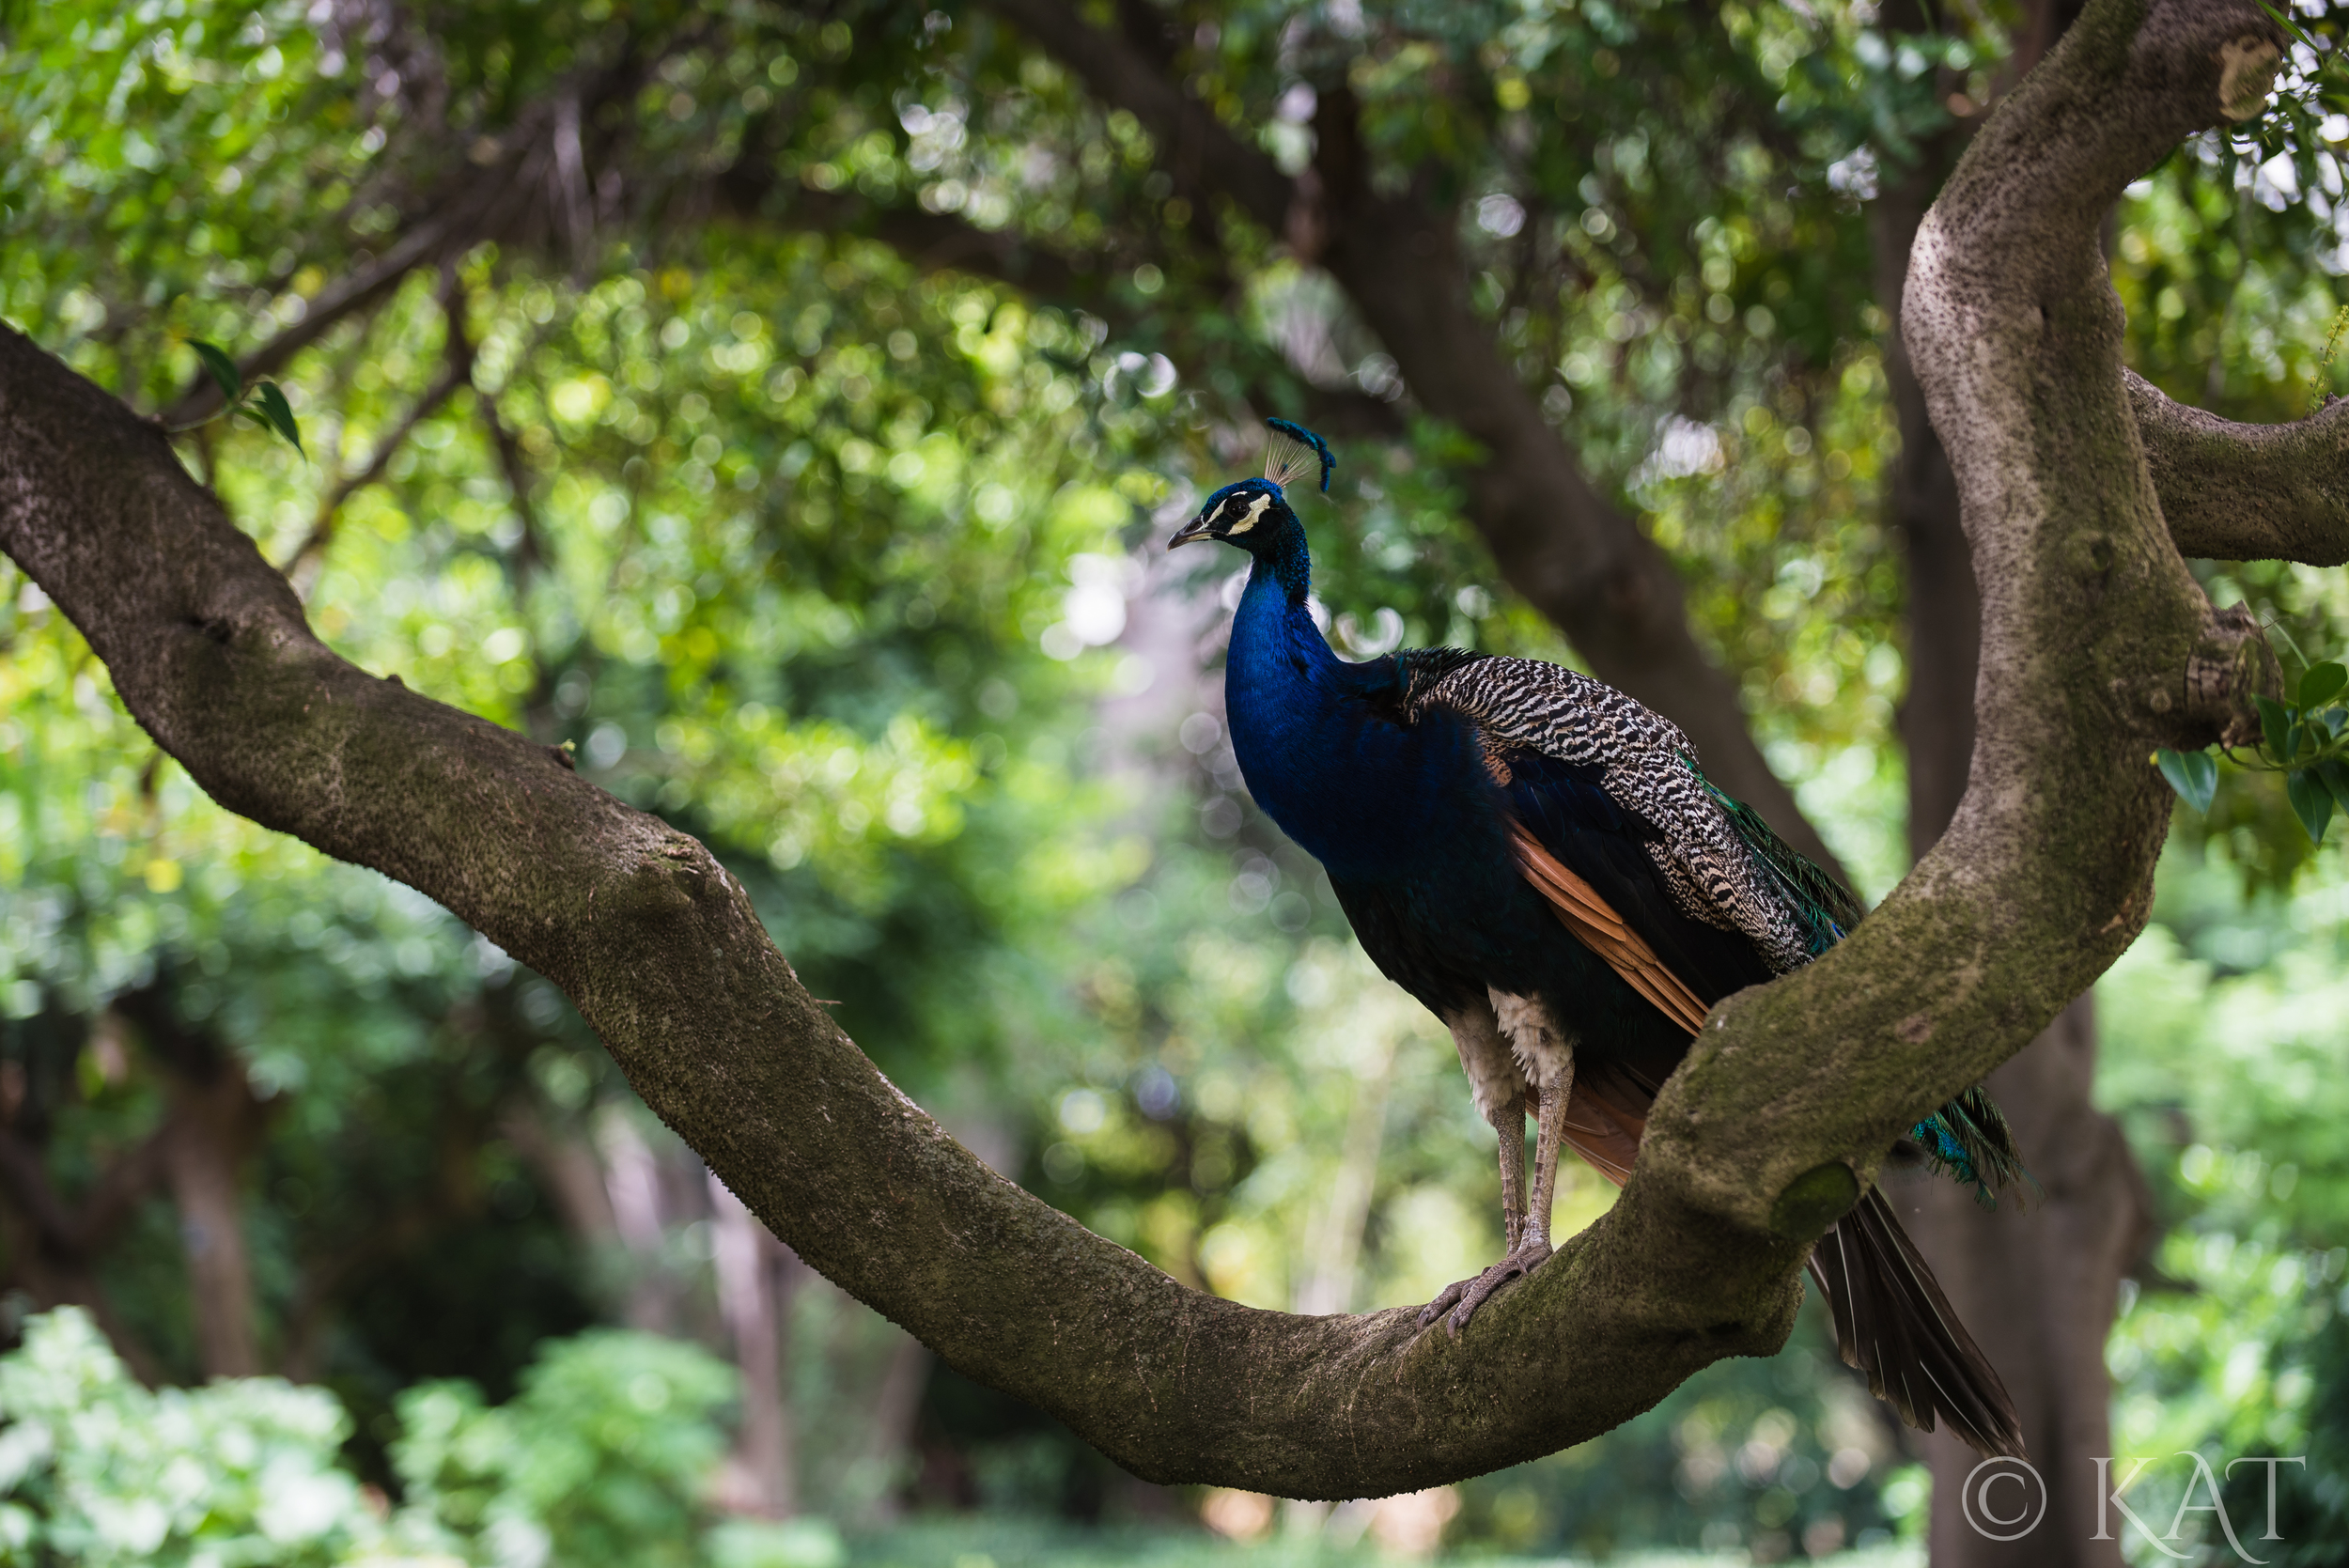 The LA Arboretum is filled with peacocks. :) And we caught this one hanging out on a tree.